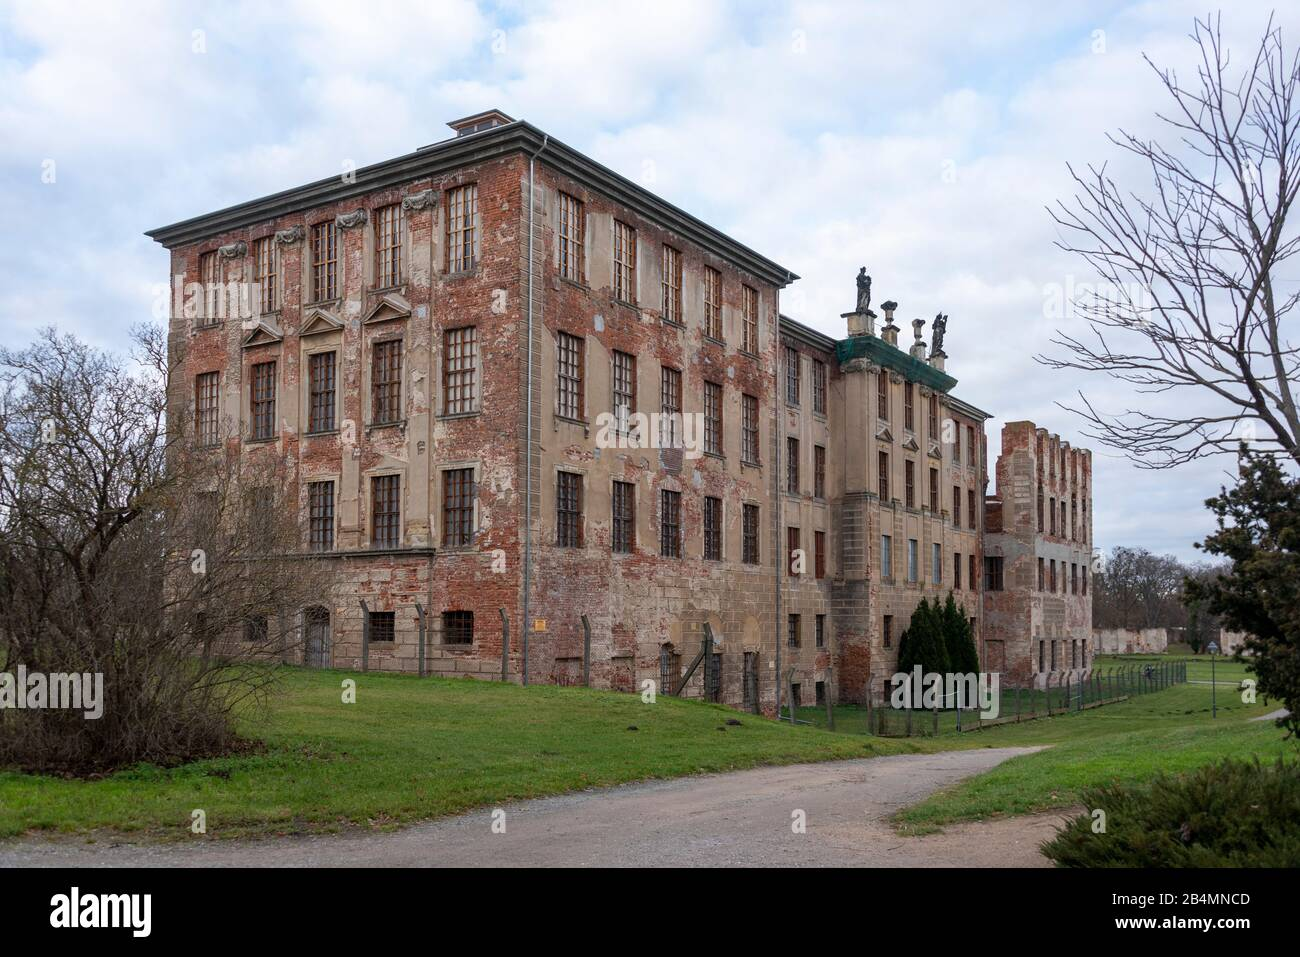 Germany, Saxony-Anhalt, Zerbst, view of the castle ruins of the former princely residence of Anhalt-Zerbst. The building was badly damaged in a bombing in World War II. Among others, Sophie Auguste Friederike von Anhalt-Zerbst, who later became Russian Tsarina Catherine the Great, lived at the castle. Stock Photo